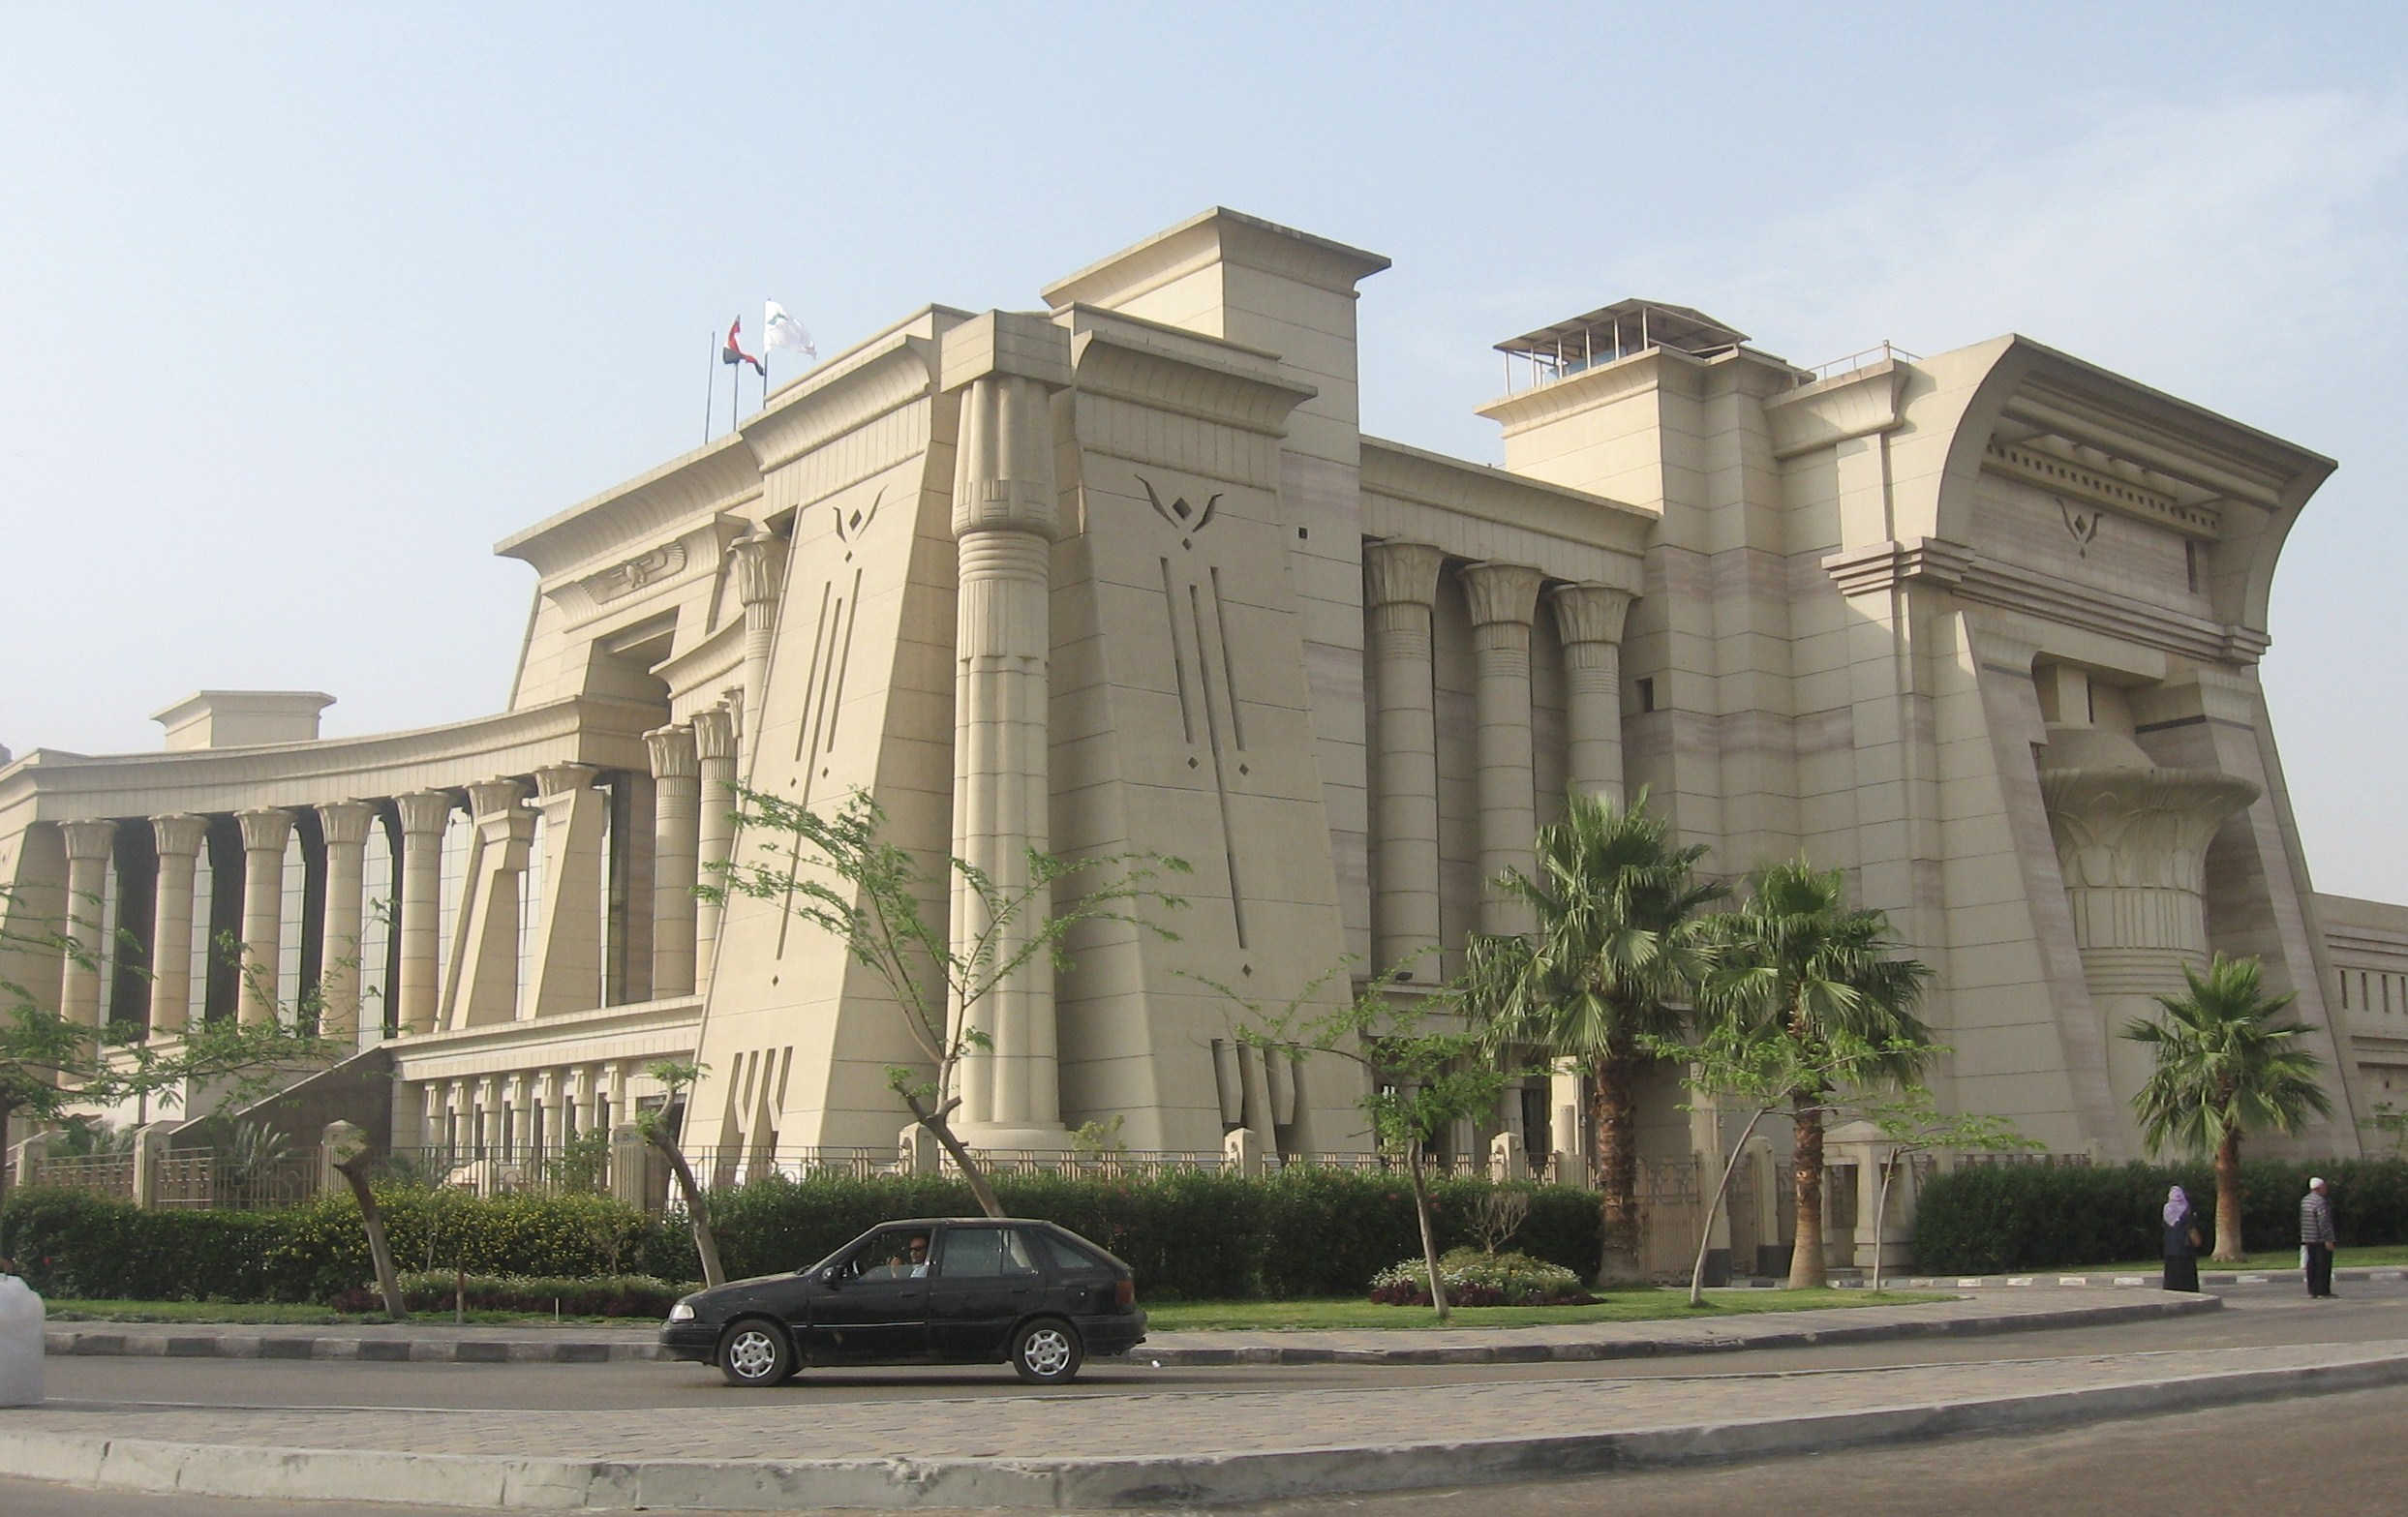 Egypt Parliament Architecture